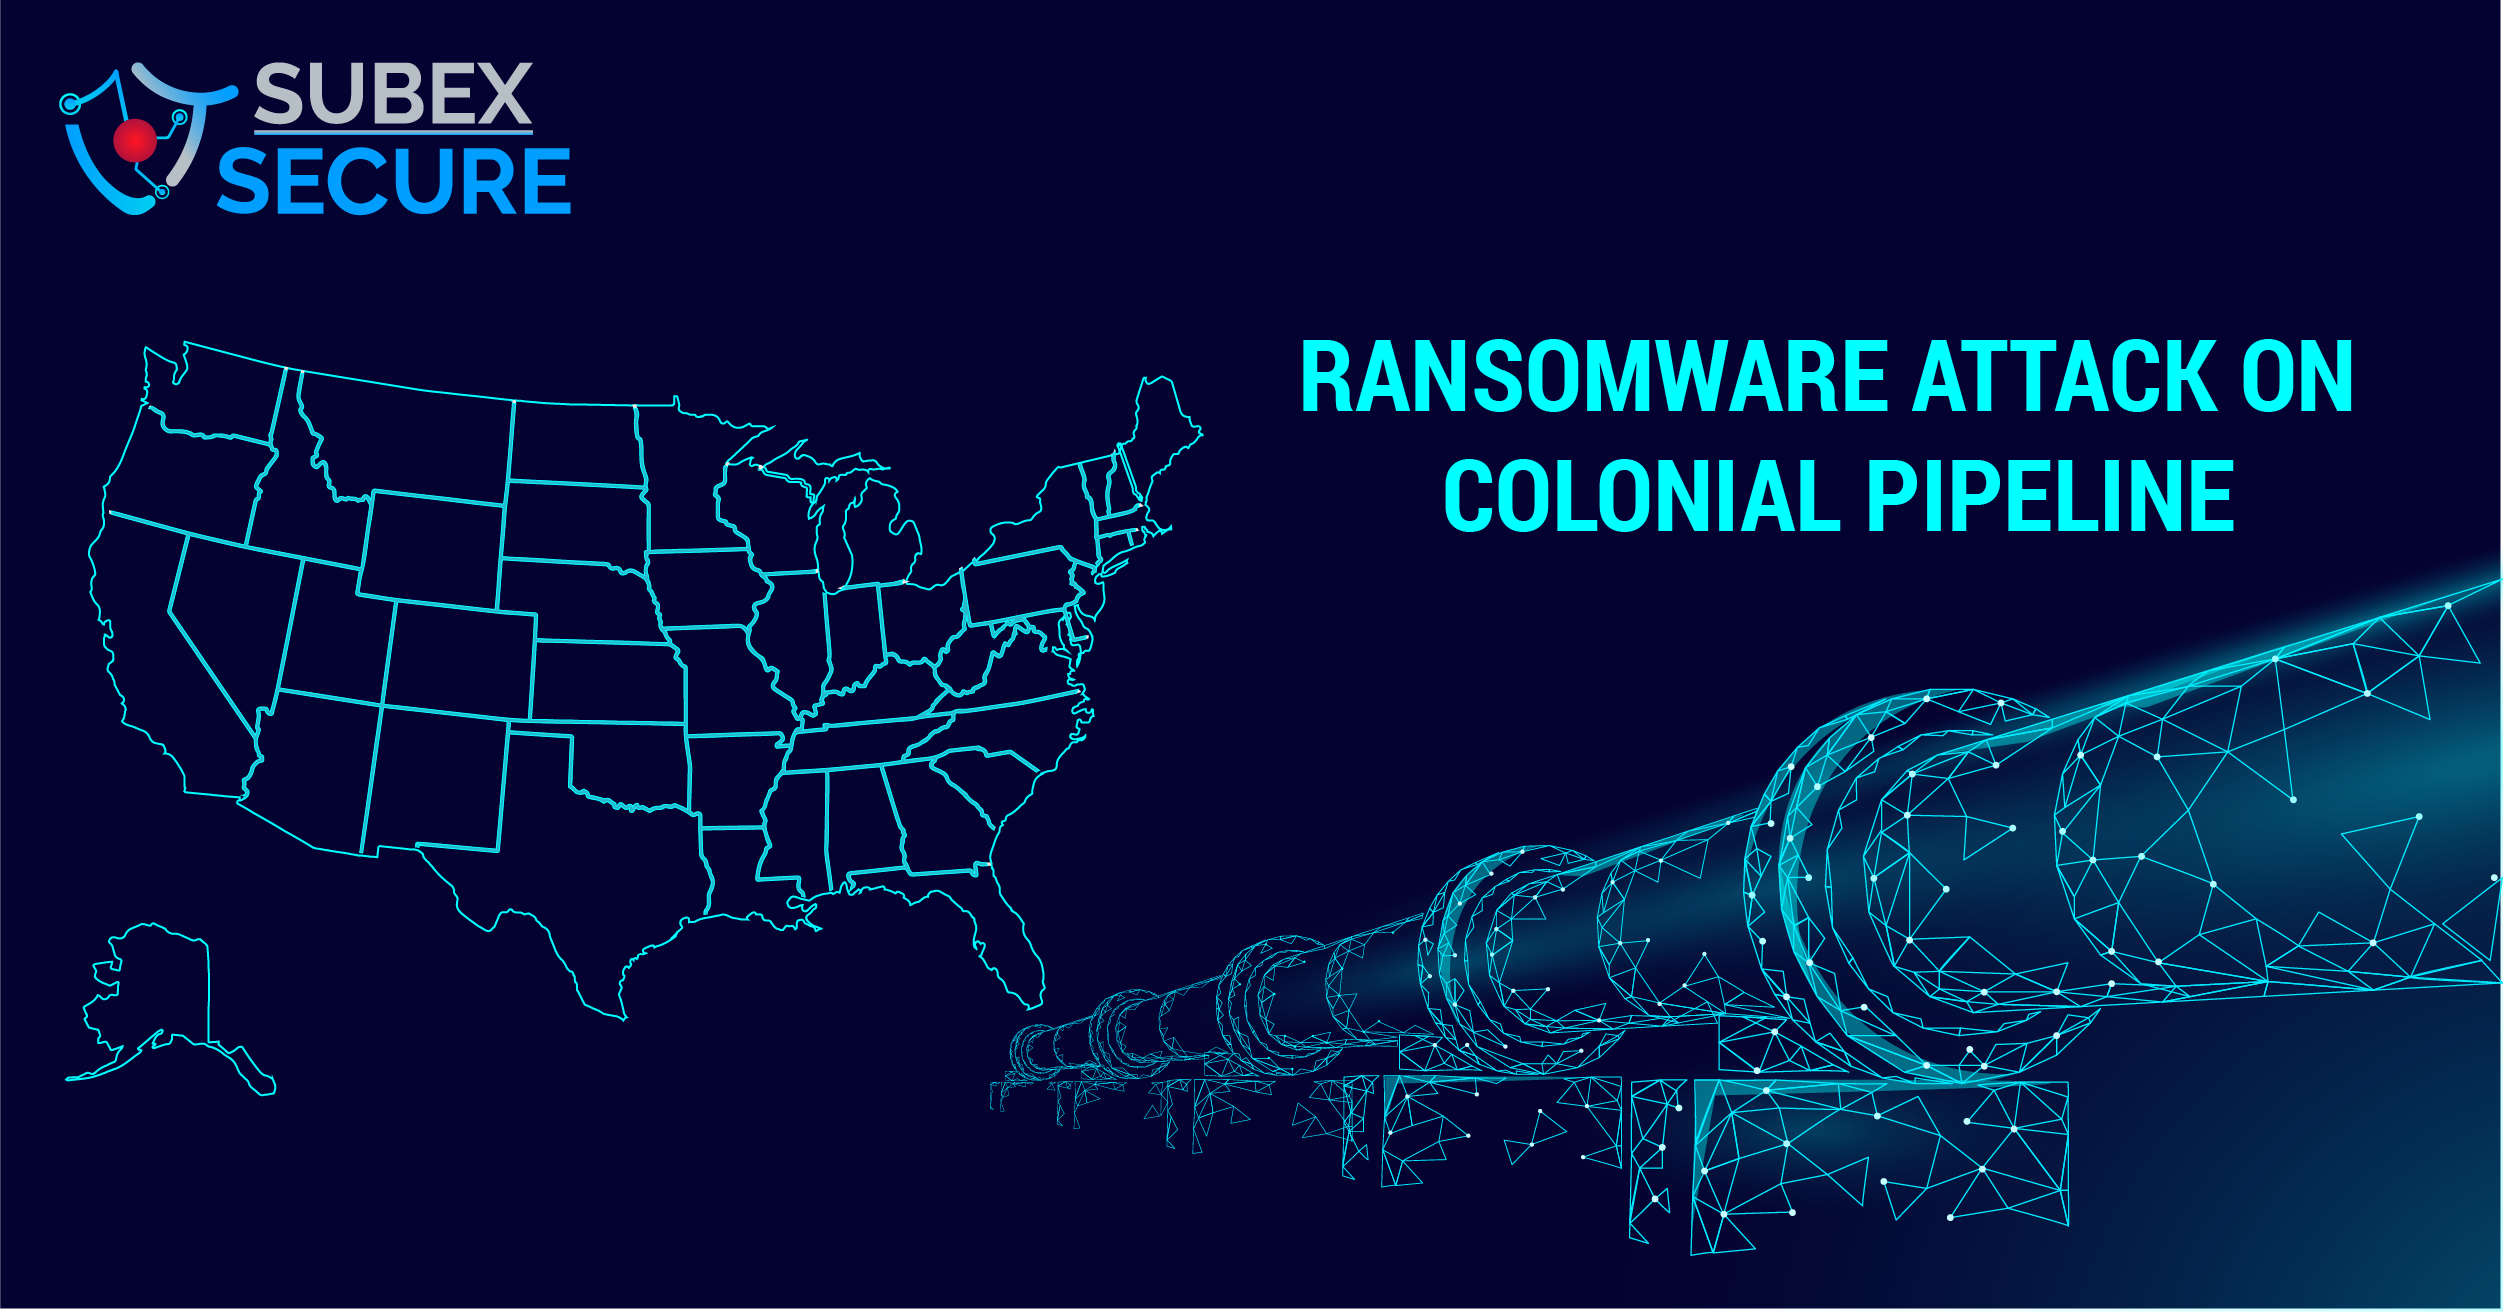 The devastating ransomware attack on the Colonial Pipeline impacted the whole of the United States East Coast and will impact its upstream and downstream providers.